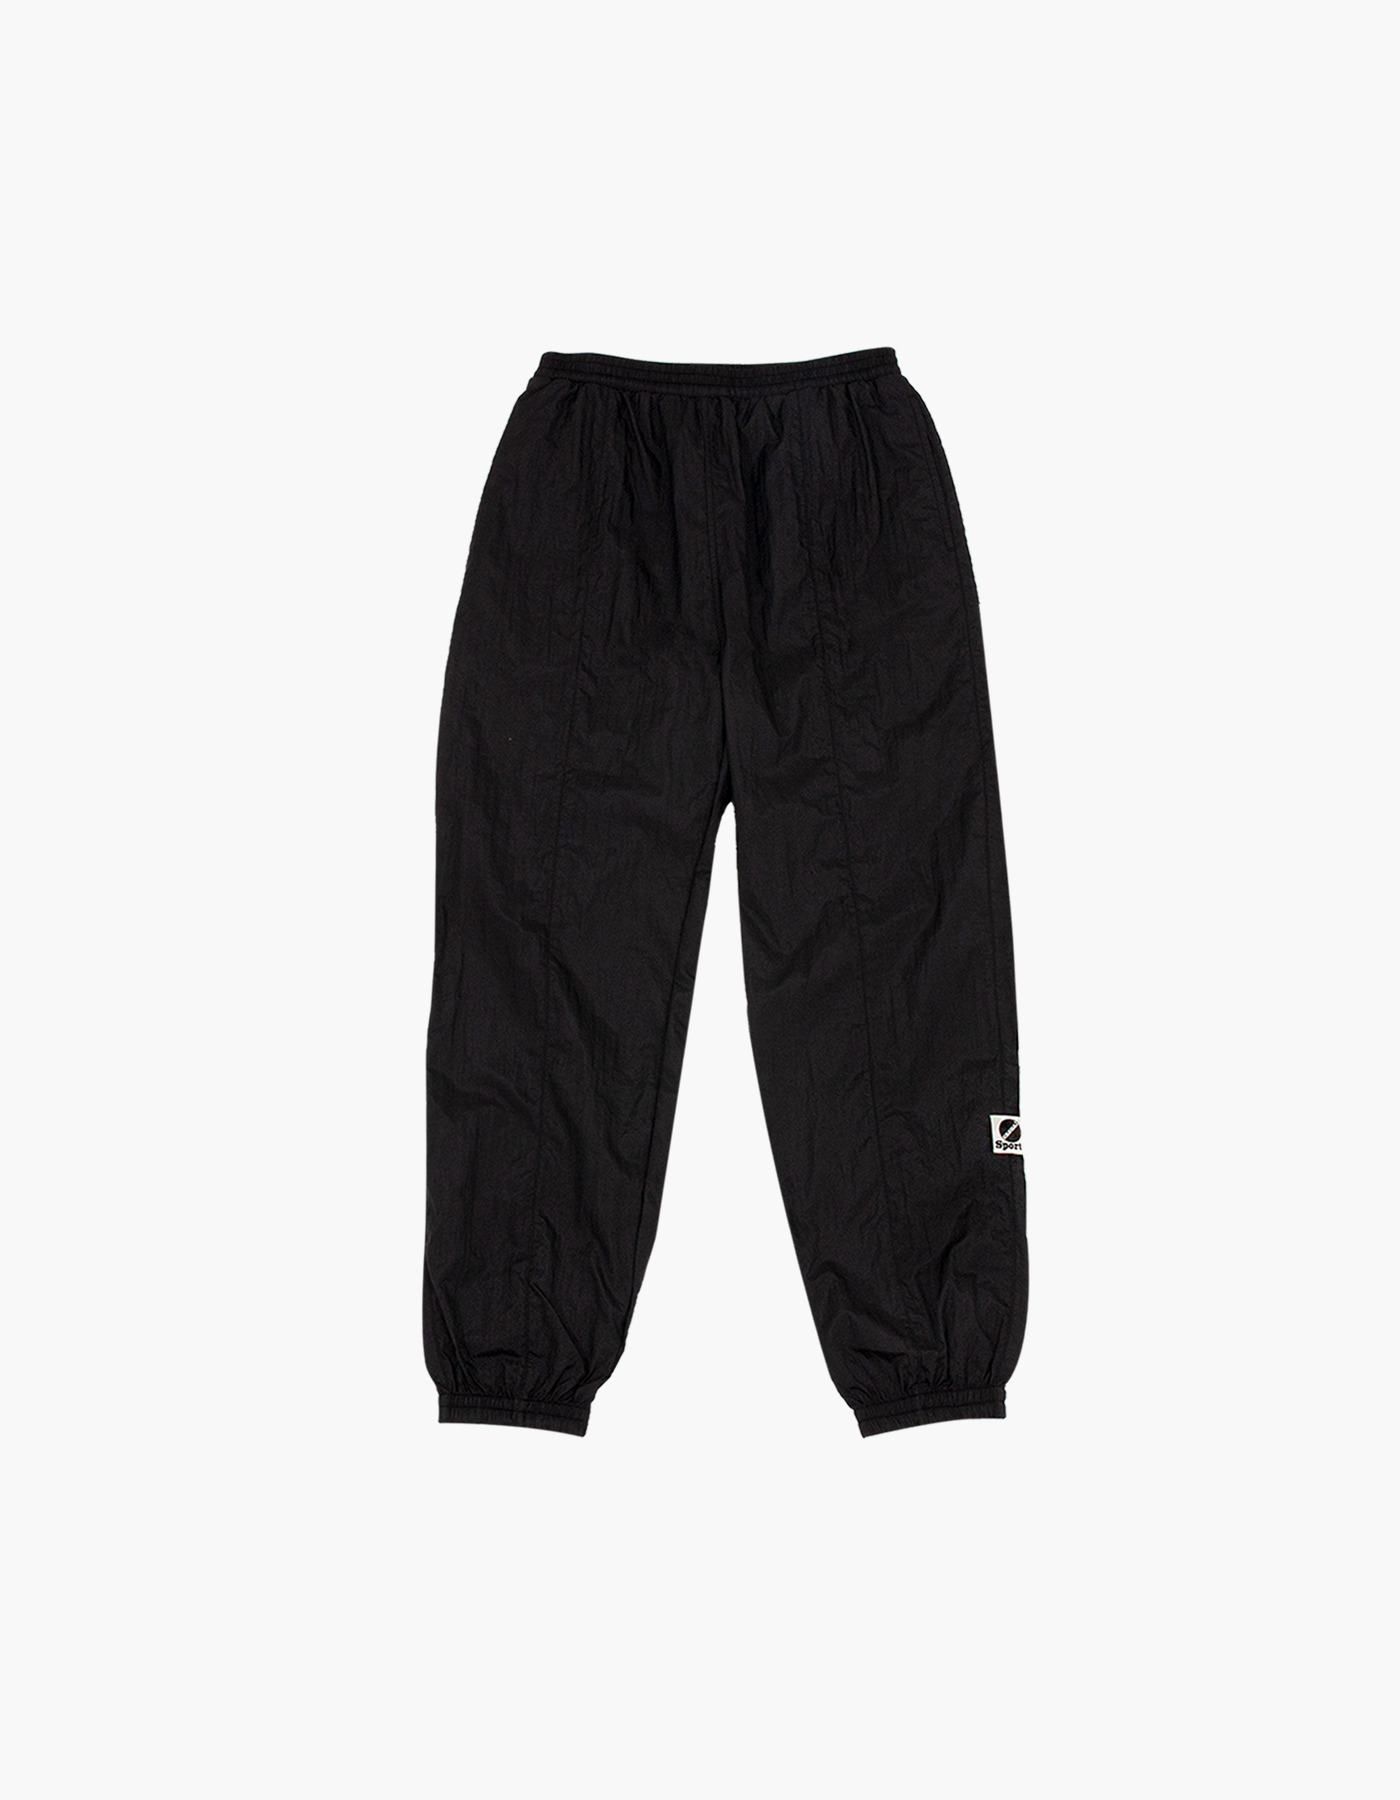 NYLON DIAMOND WASHER PANTS / BLACK